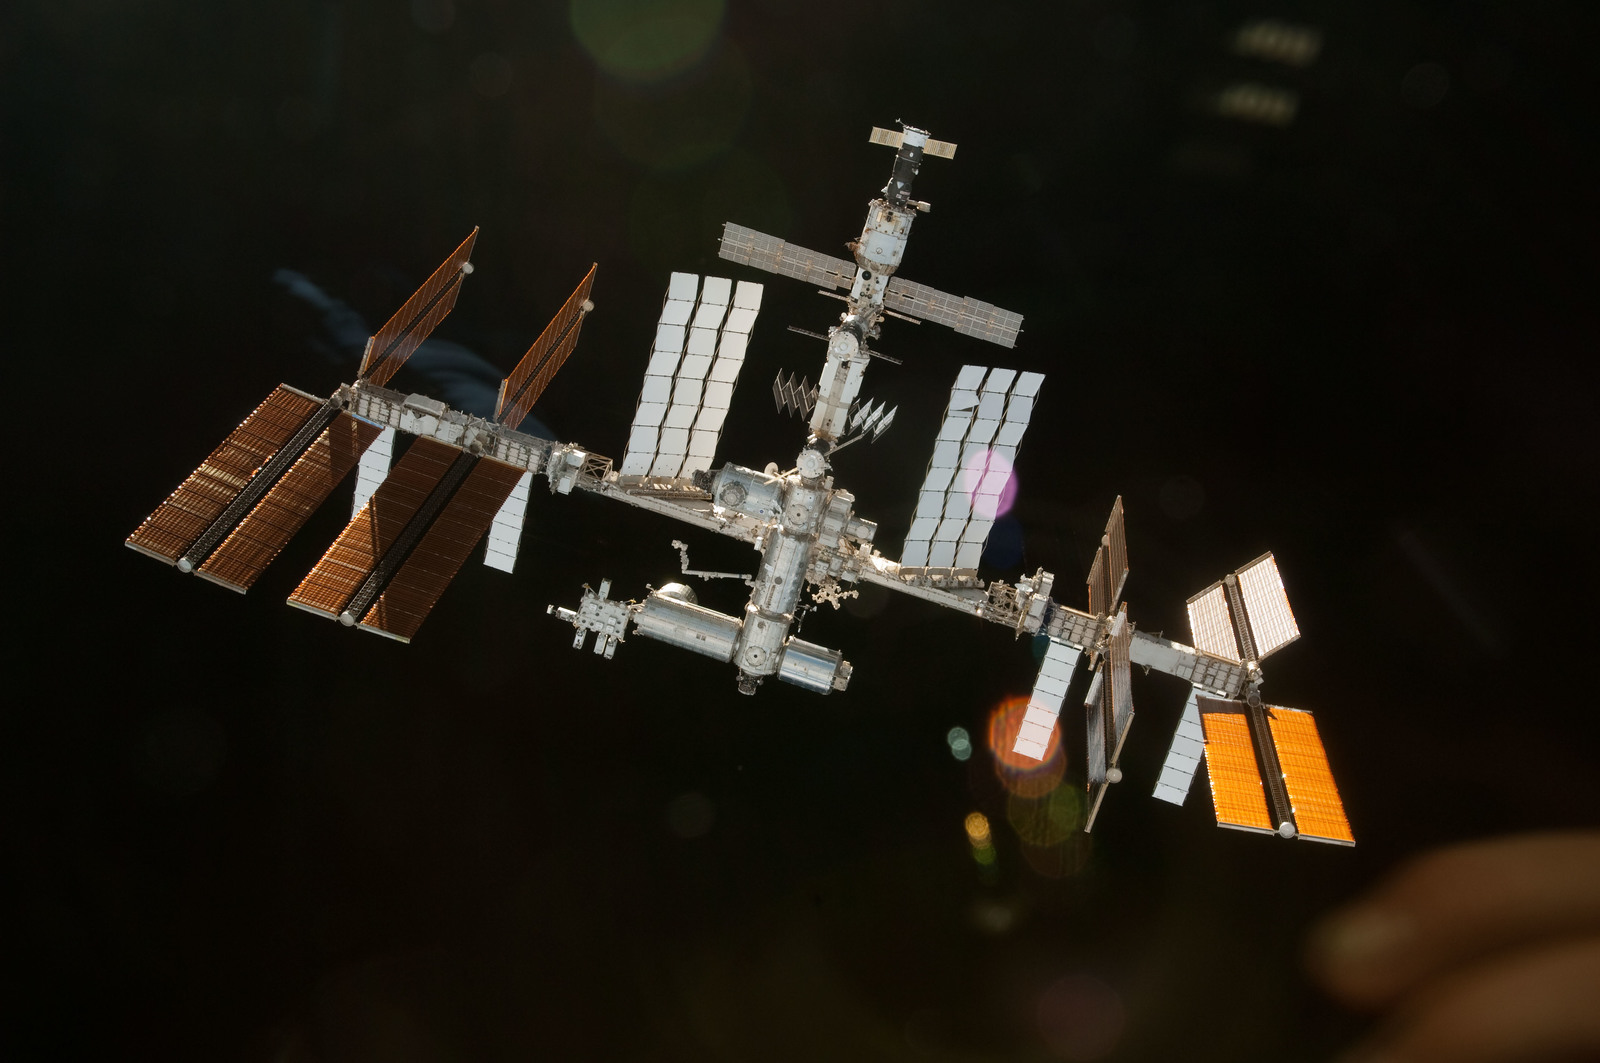 S130E012208 - STS-130 - Overall View of ISS After STS-130 Undocking